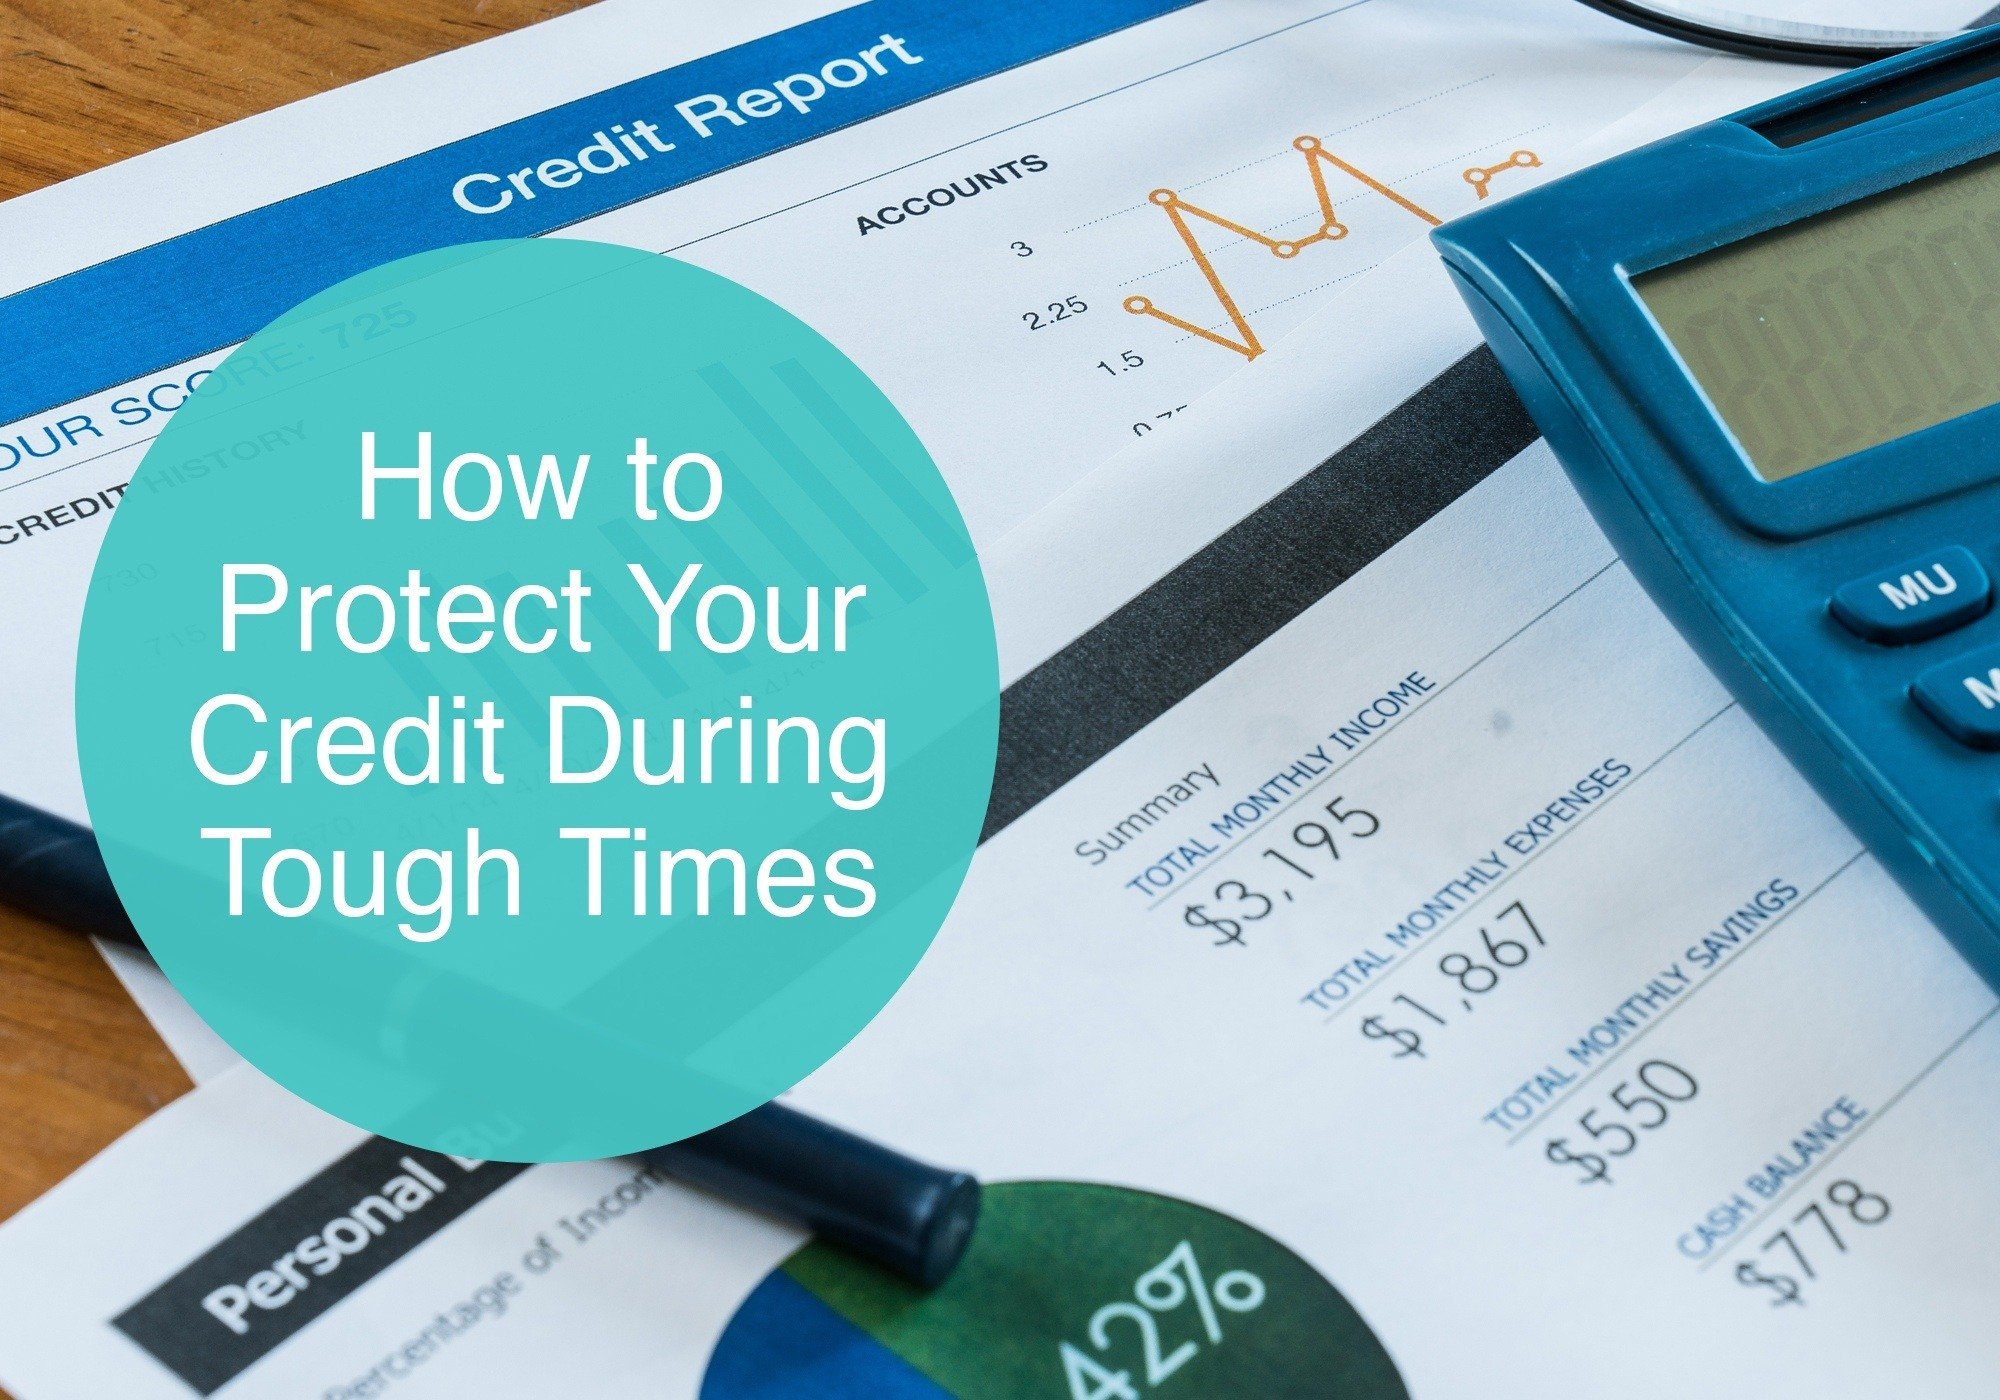 How to Protect Your Credit During Tough Times